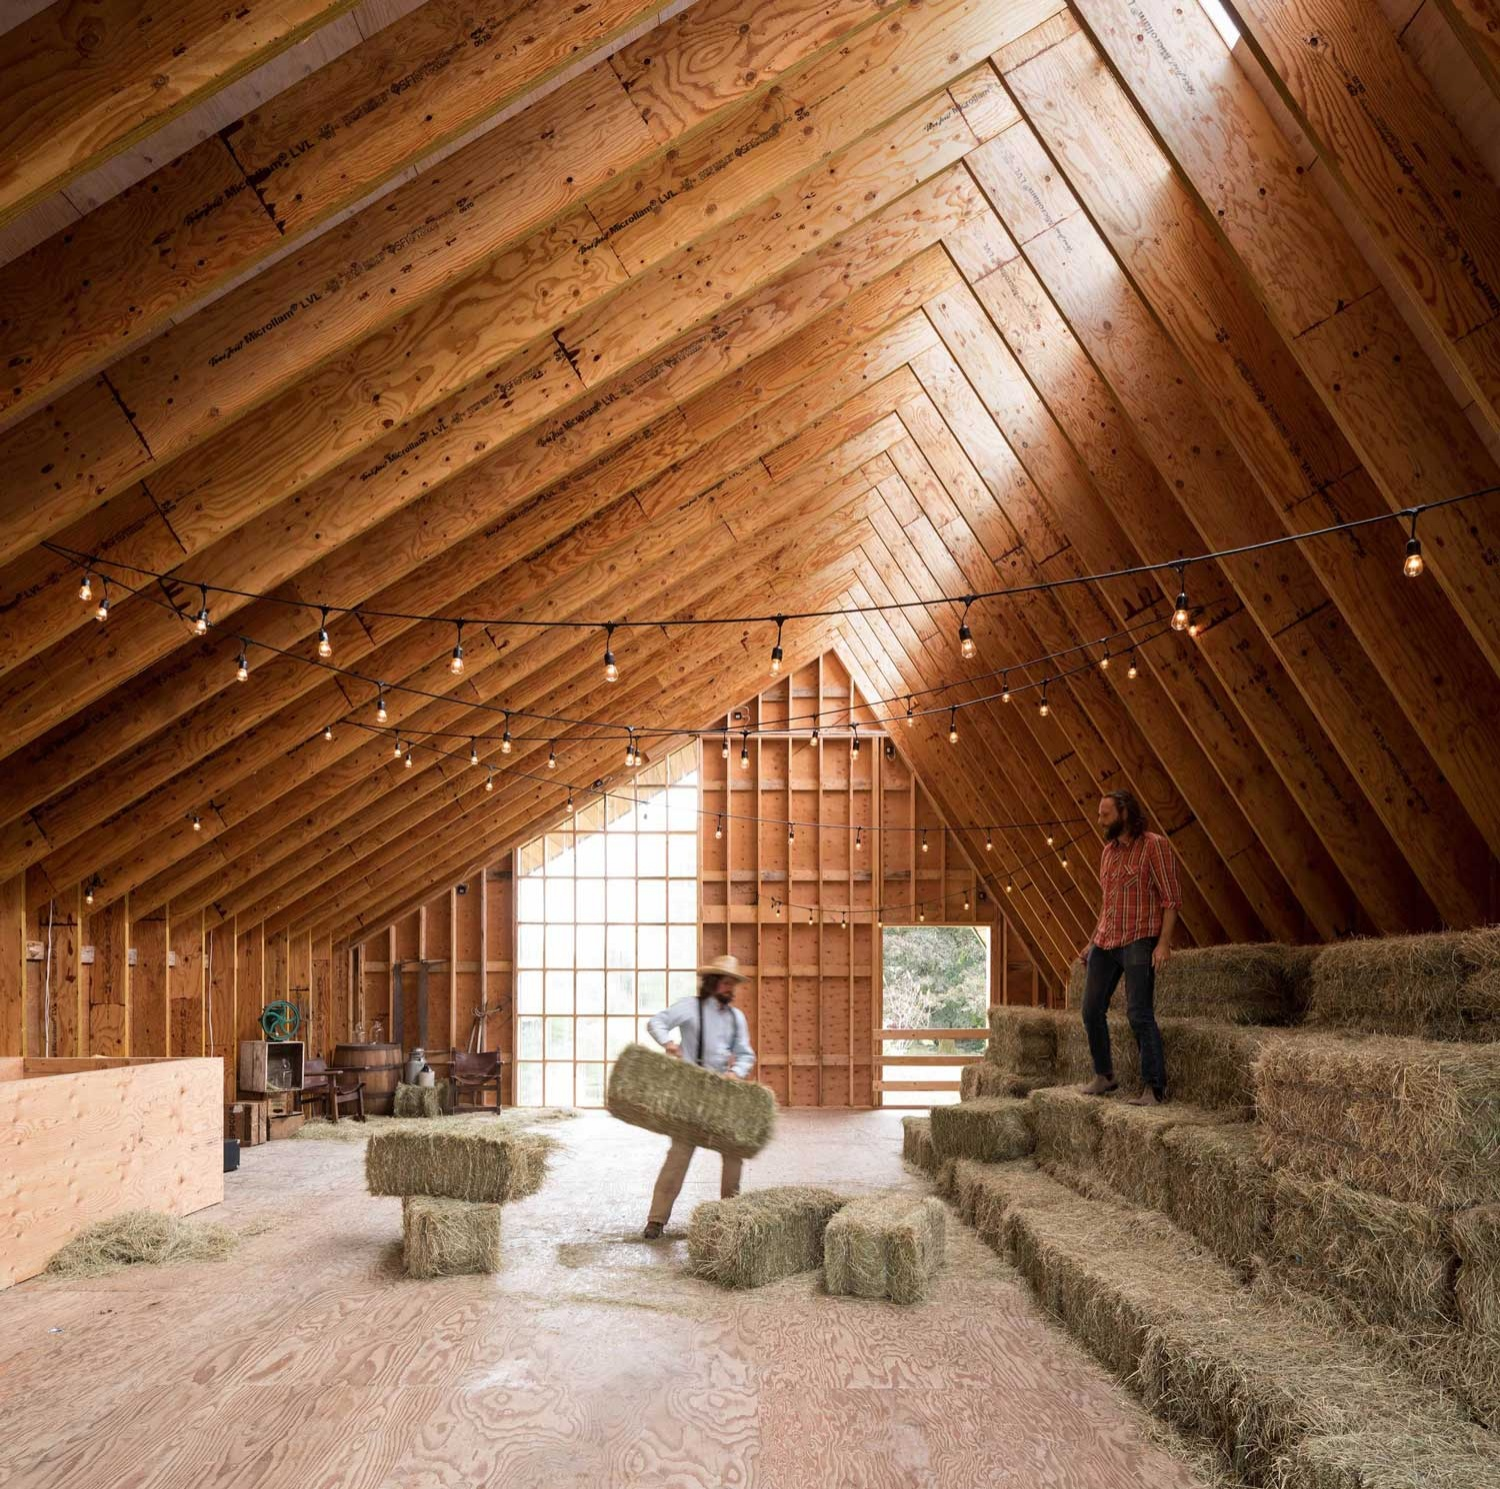 swallowfield-barn-in-langley-bc-canada-by-motiv-architects-yellowtrace-04_01